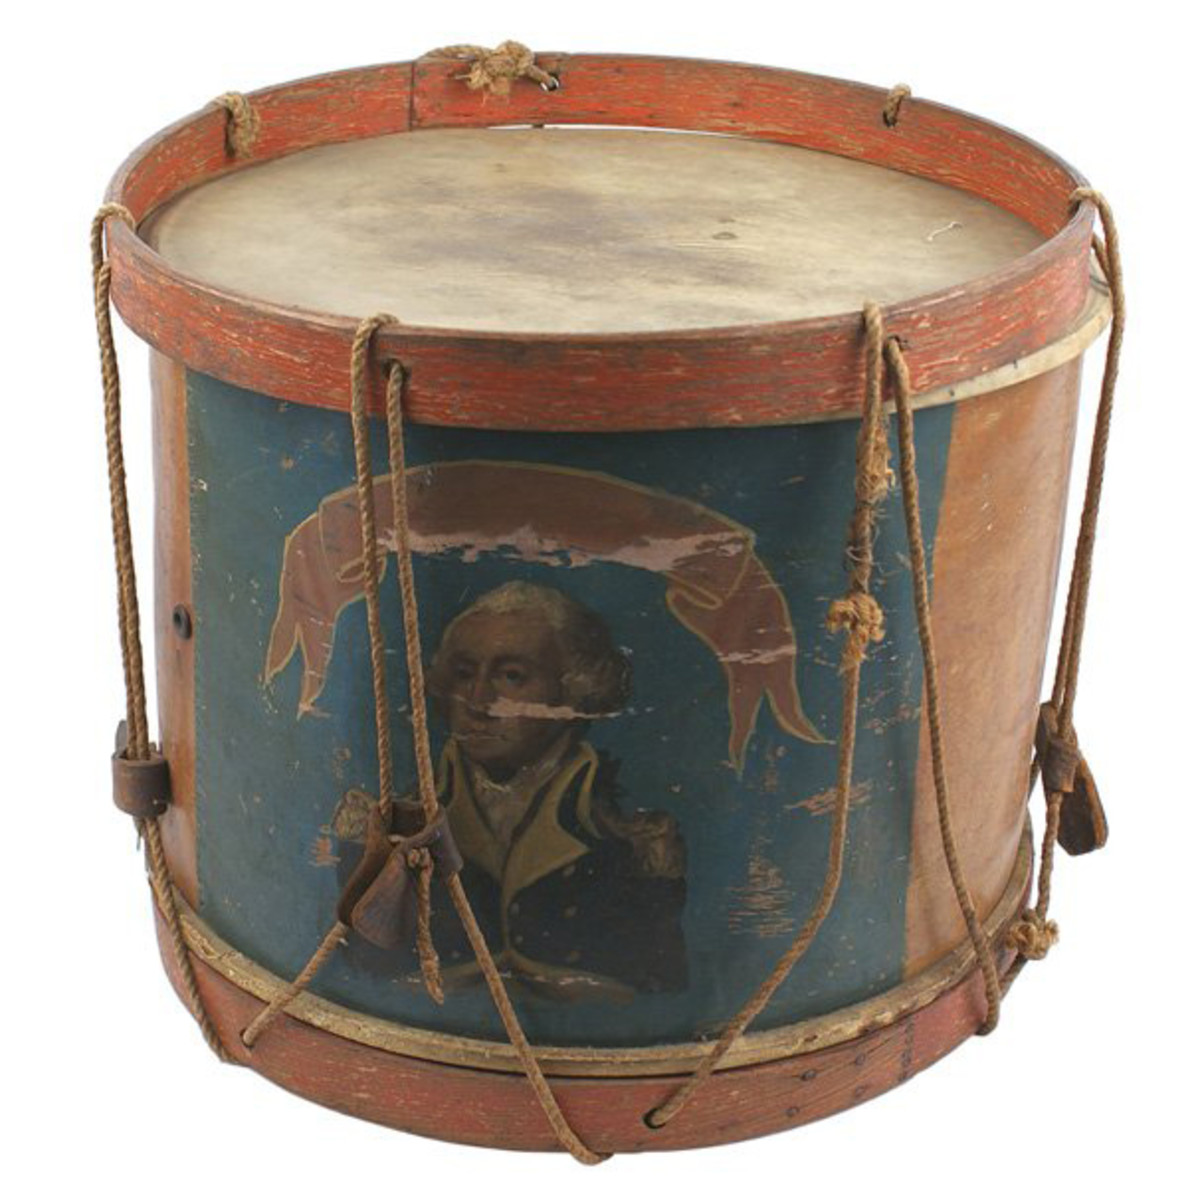 Pre-Civil War-era snare drum with basswood body and painted portrait of George Washington ($1,763).